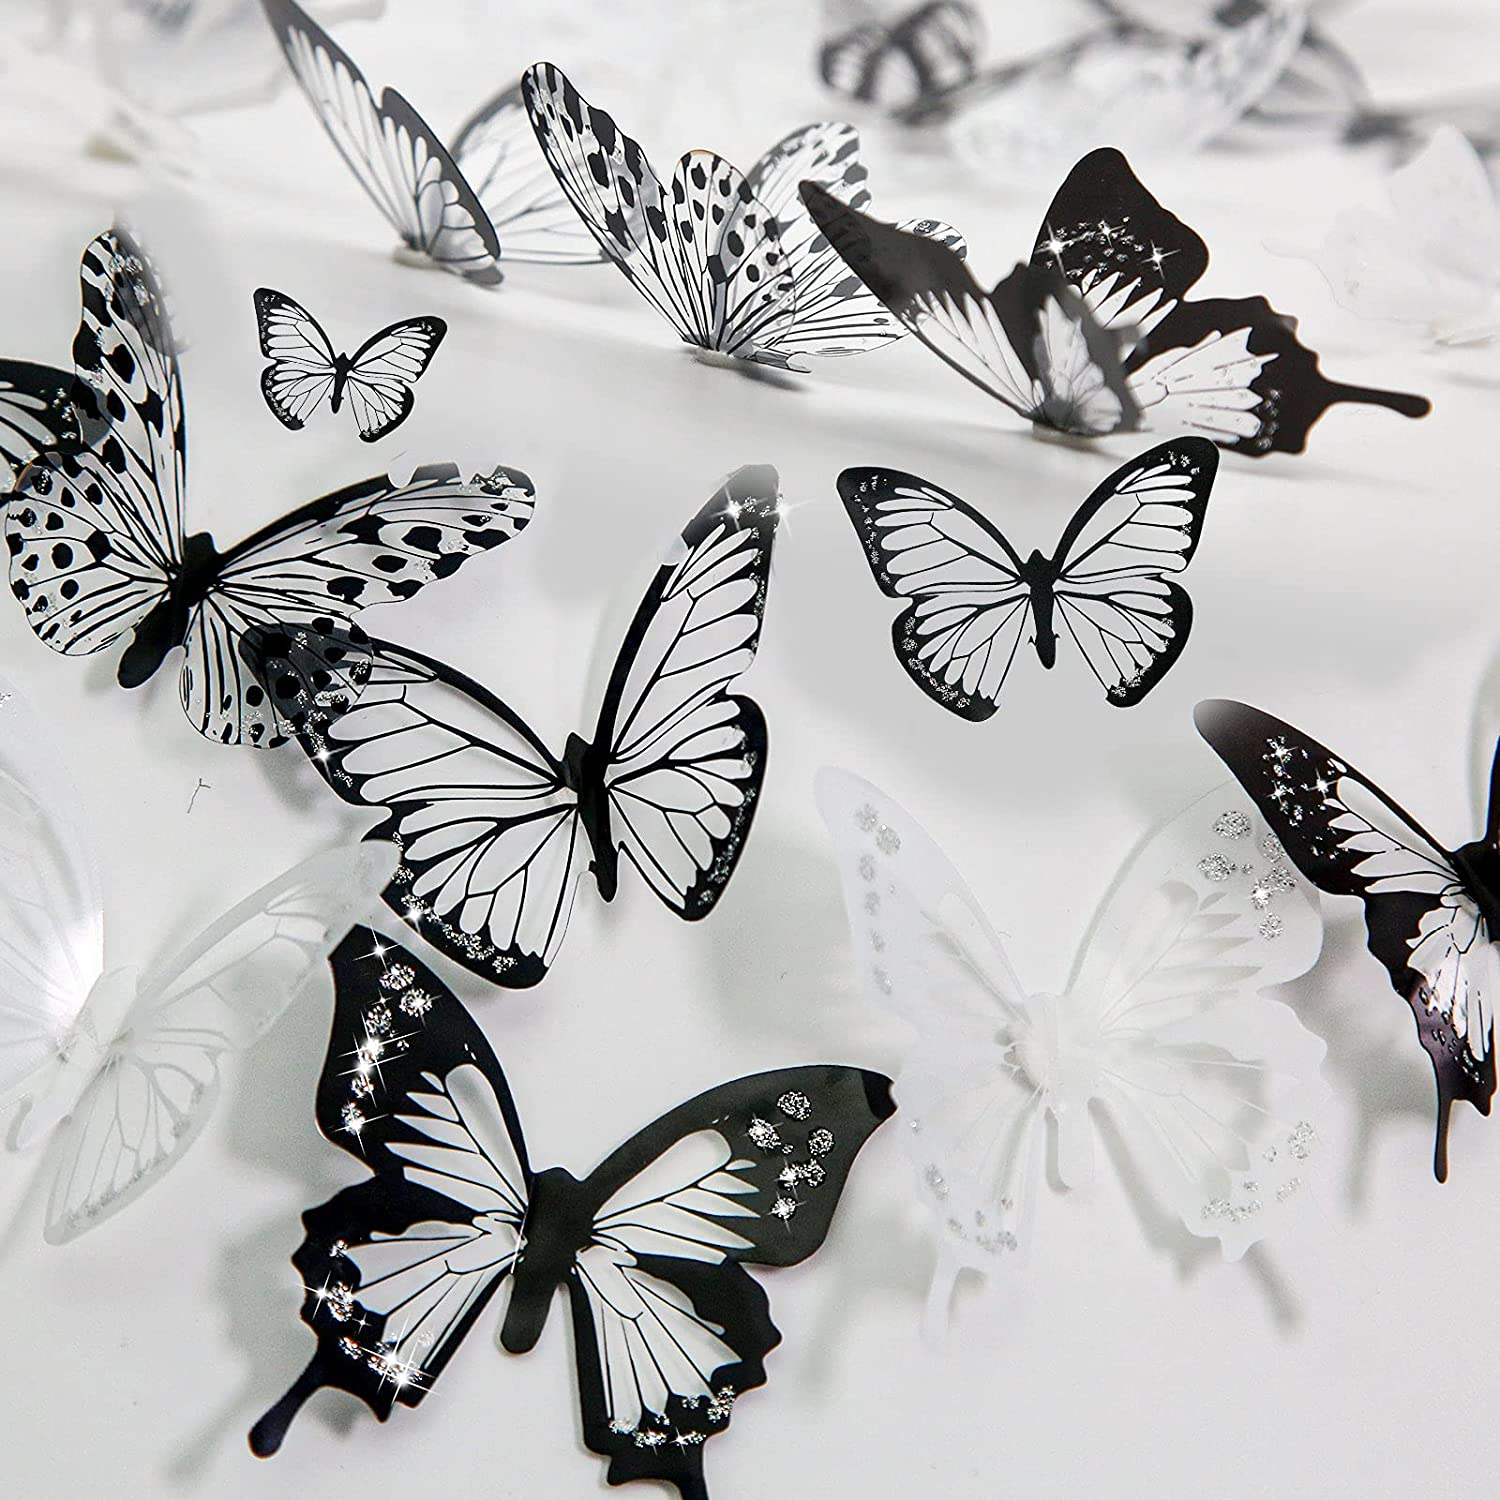 Aulynp 72 Pcs 3D Butterfly Wall Decor Stickers Black White Removable Butterfly Wall Decals Window Furniture Party Birthday Wedding Decoration for Bedroom Living Room Decors, with Sticky Dots